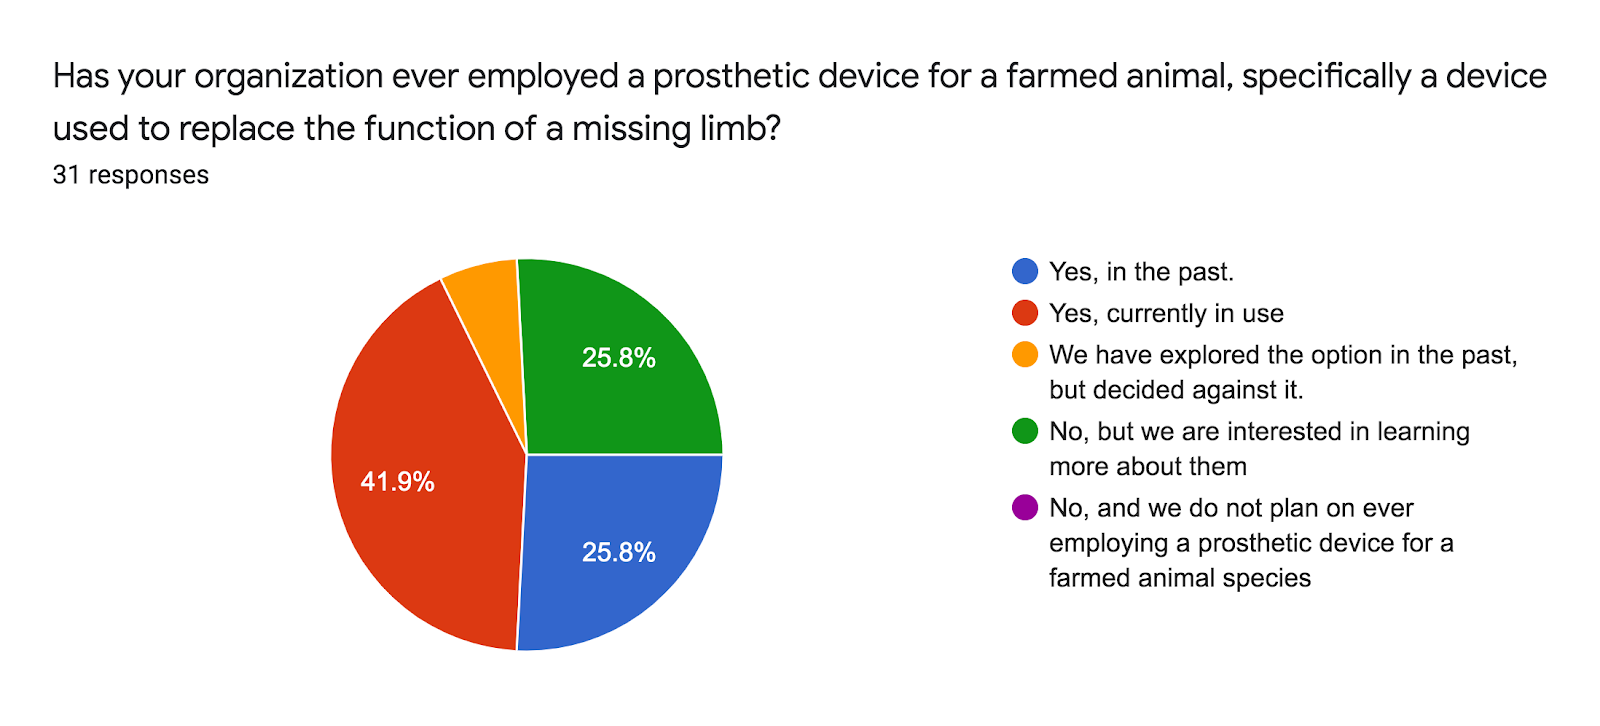 Forms response chart. Question title: Has your organization ever employed a prosthetic device for a farmed animal, specifically a device used to replace the function of a missing limb?. Number of responses: 31 responses.